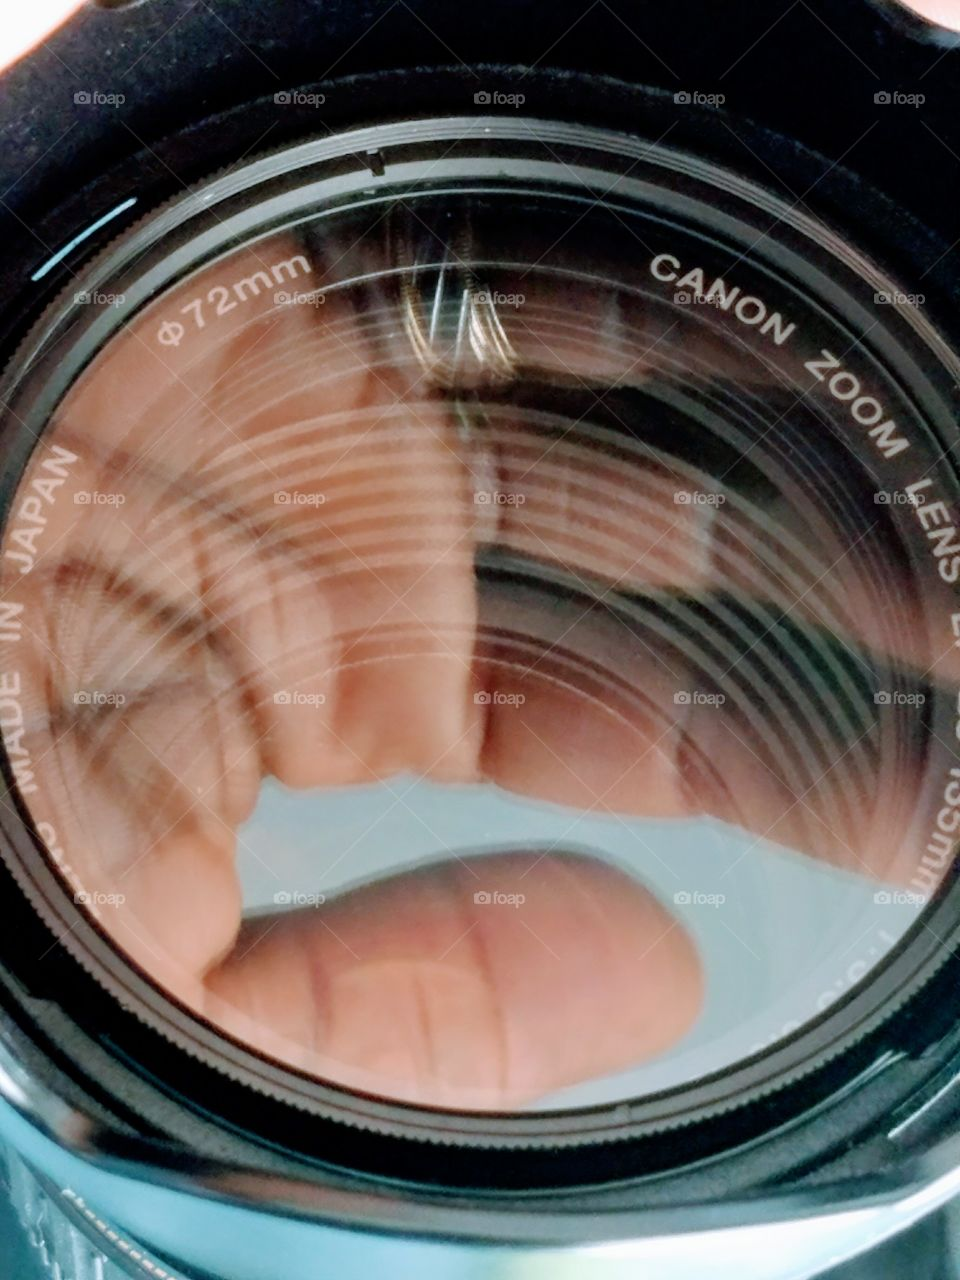 Reflection of hand on camera lens